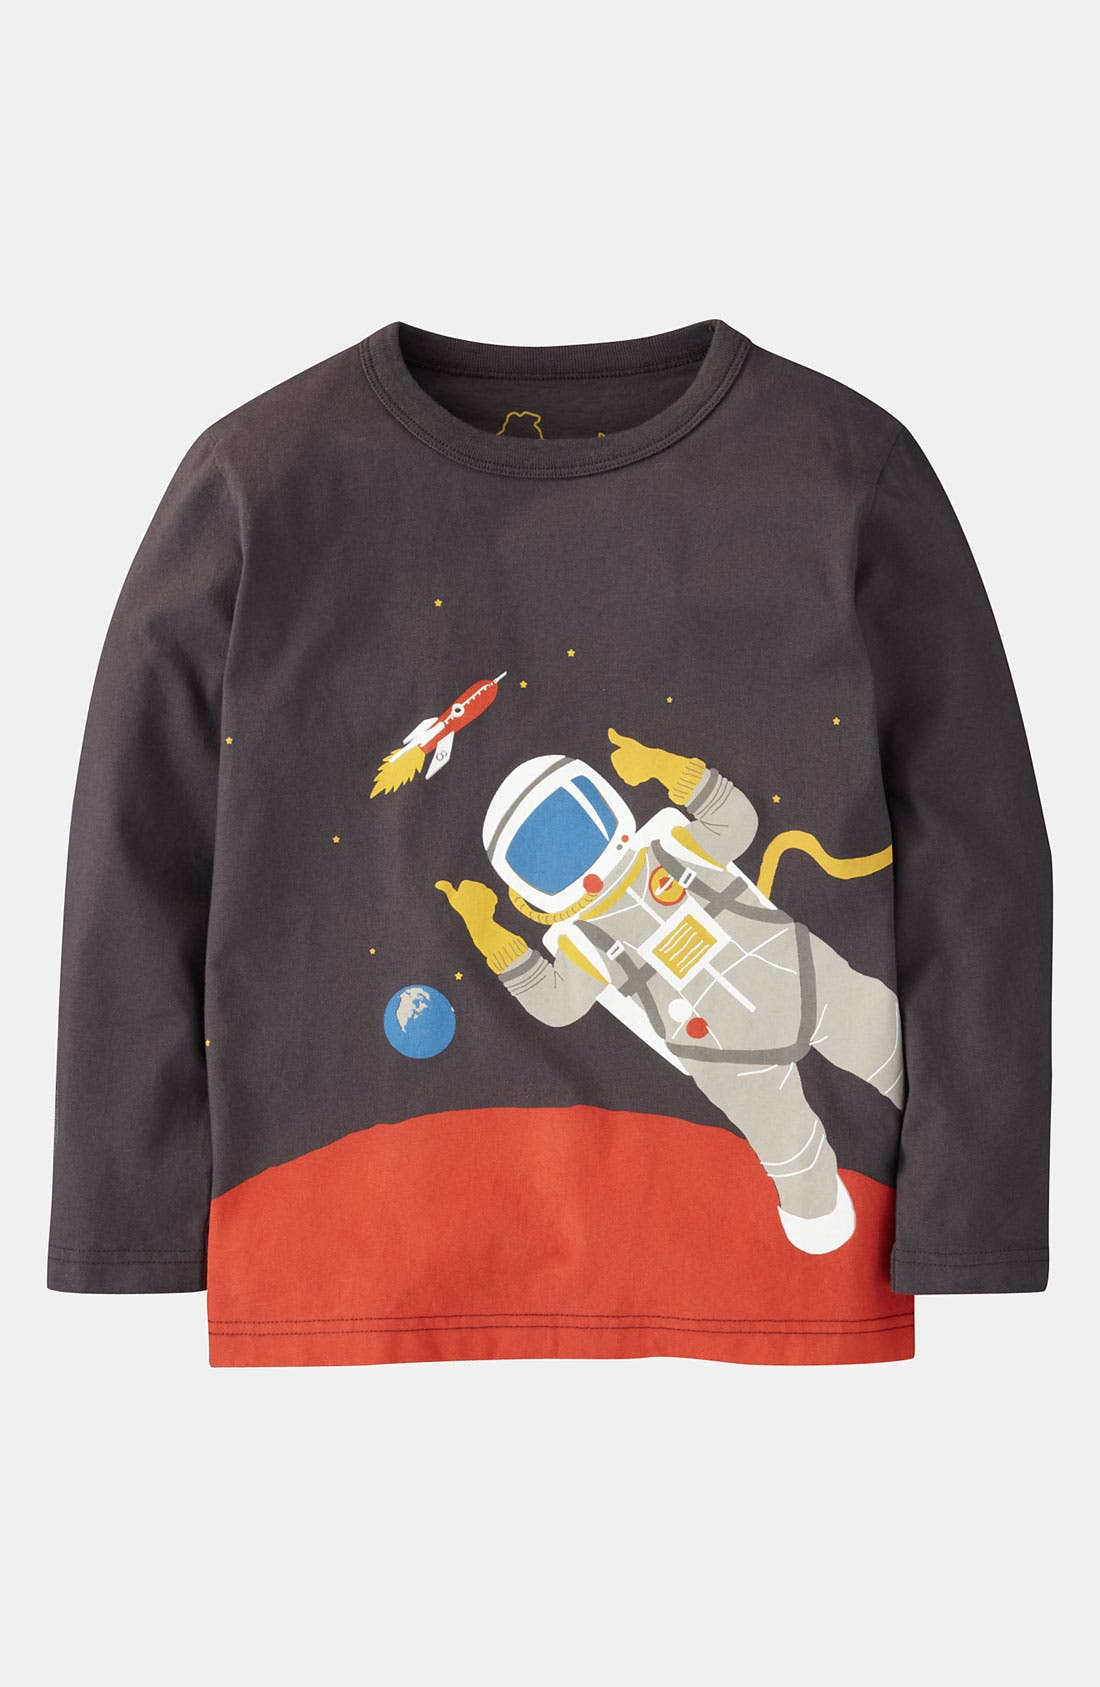 Main Image - Mini Boden 'Exploration' T-Shirt (Toddler)